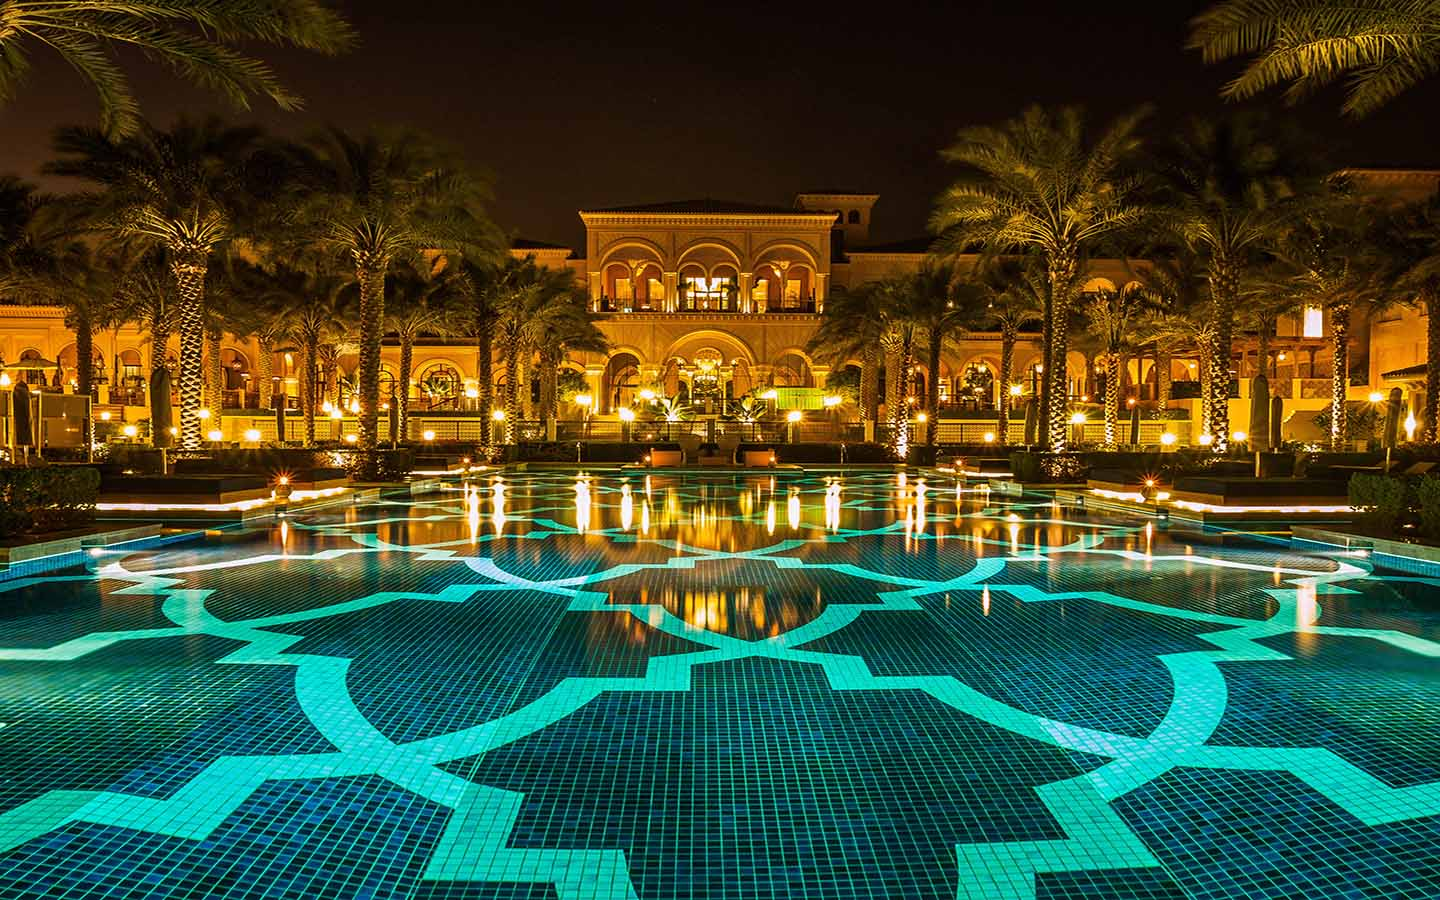 One of the luxurious hotels in Palm Jumeirah is One & Only